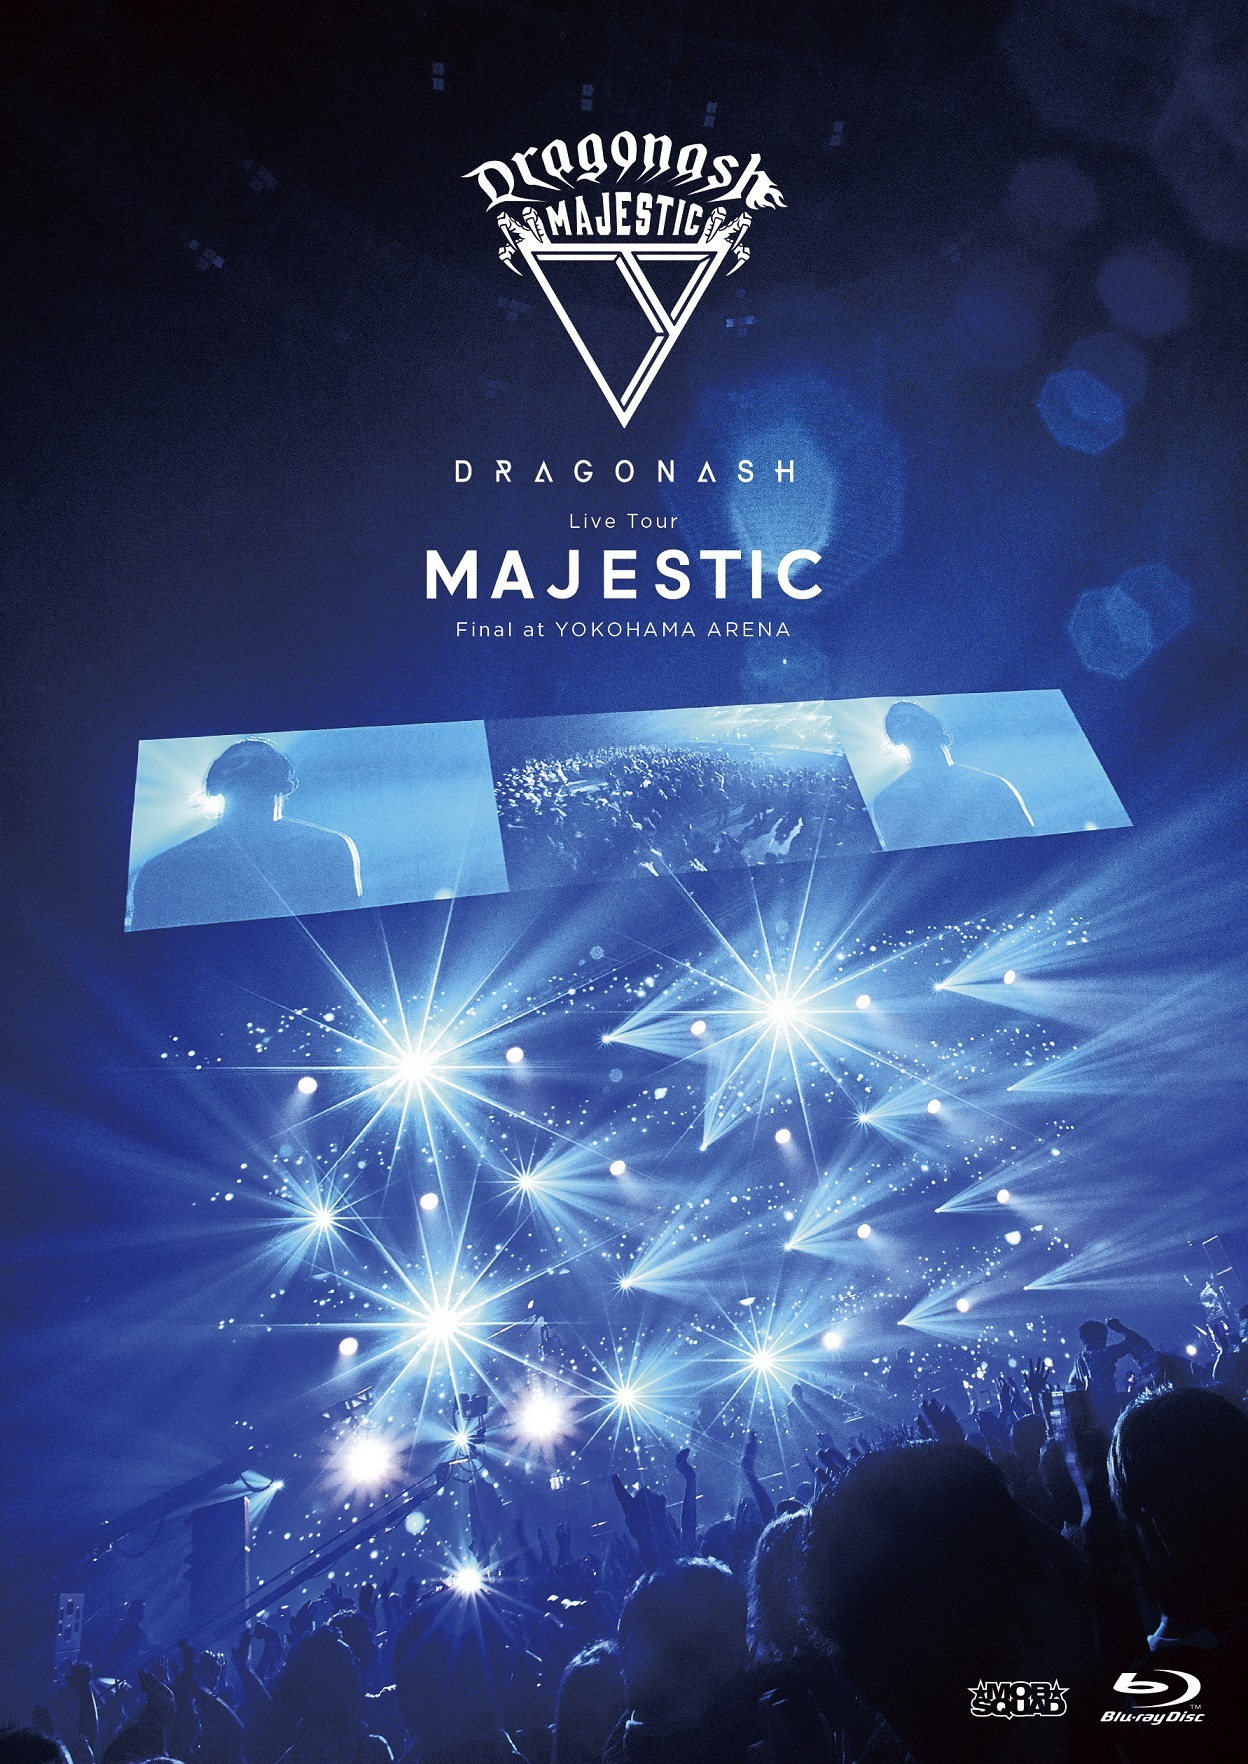 『Live Tour MAJESTIC Final at YOKOHAMA ARENA』通常盤BD